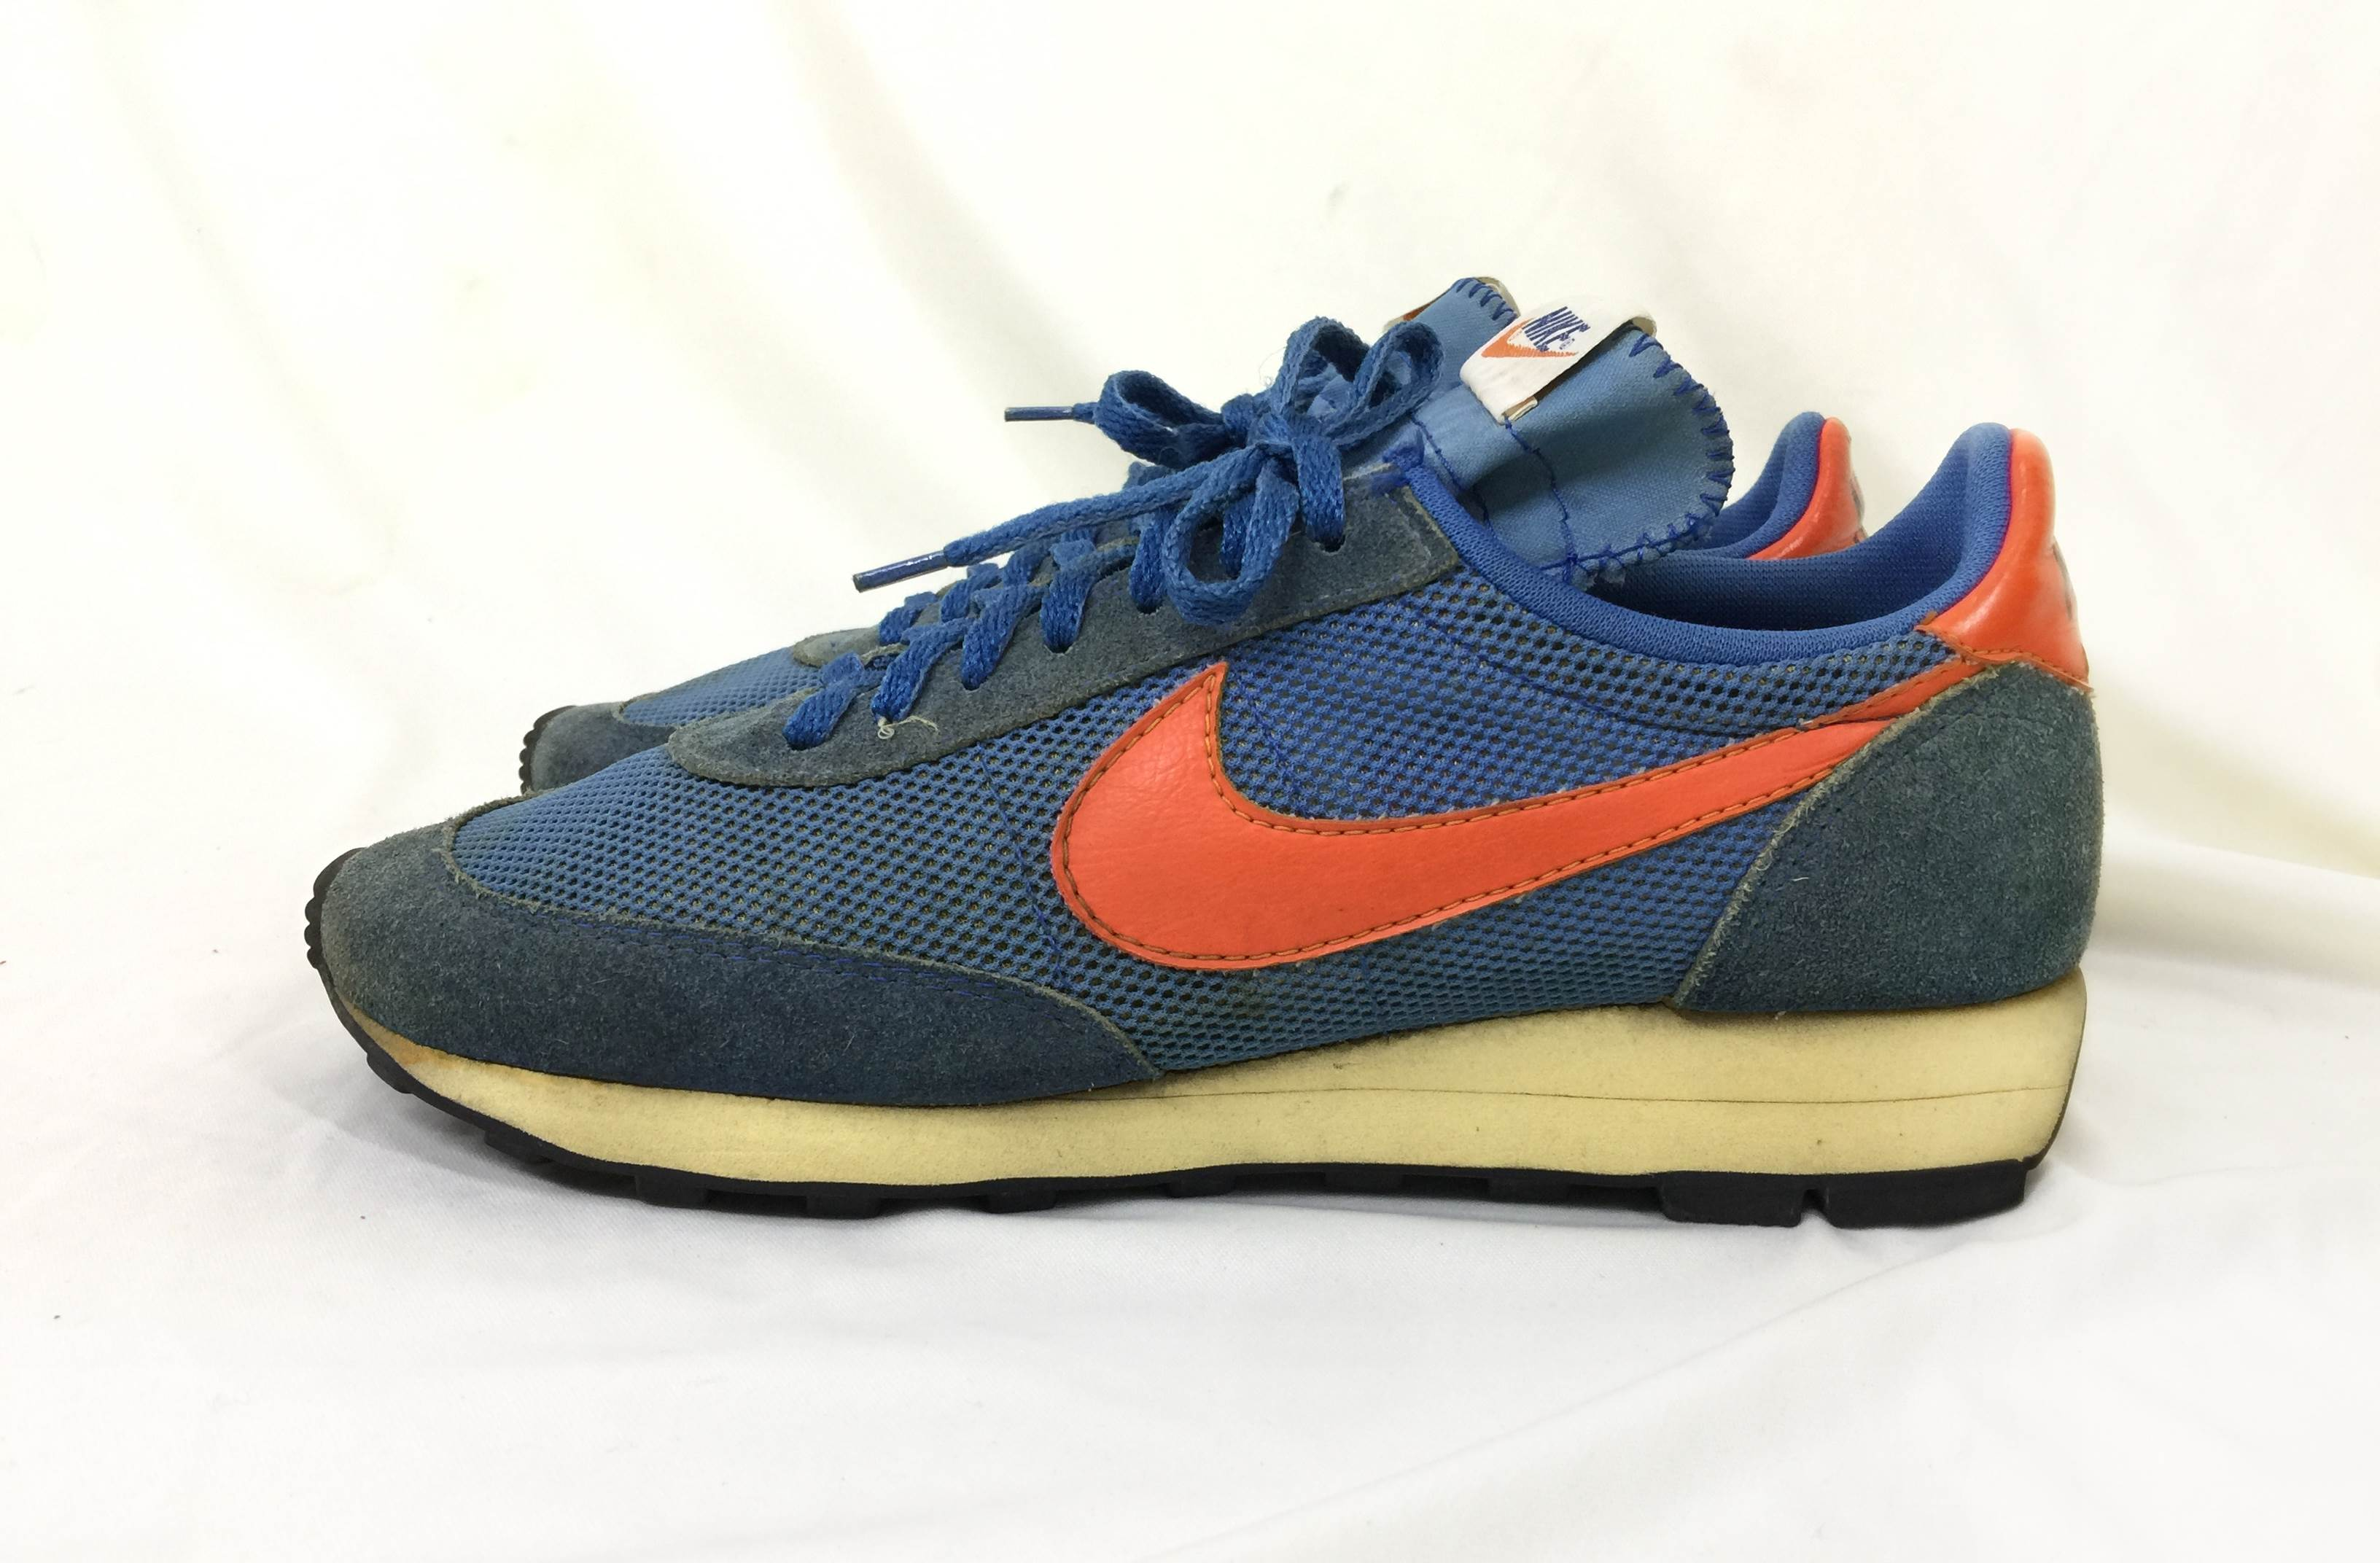 Women's Shoes sneakers Nike Pre Montreal Racer Vintage